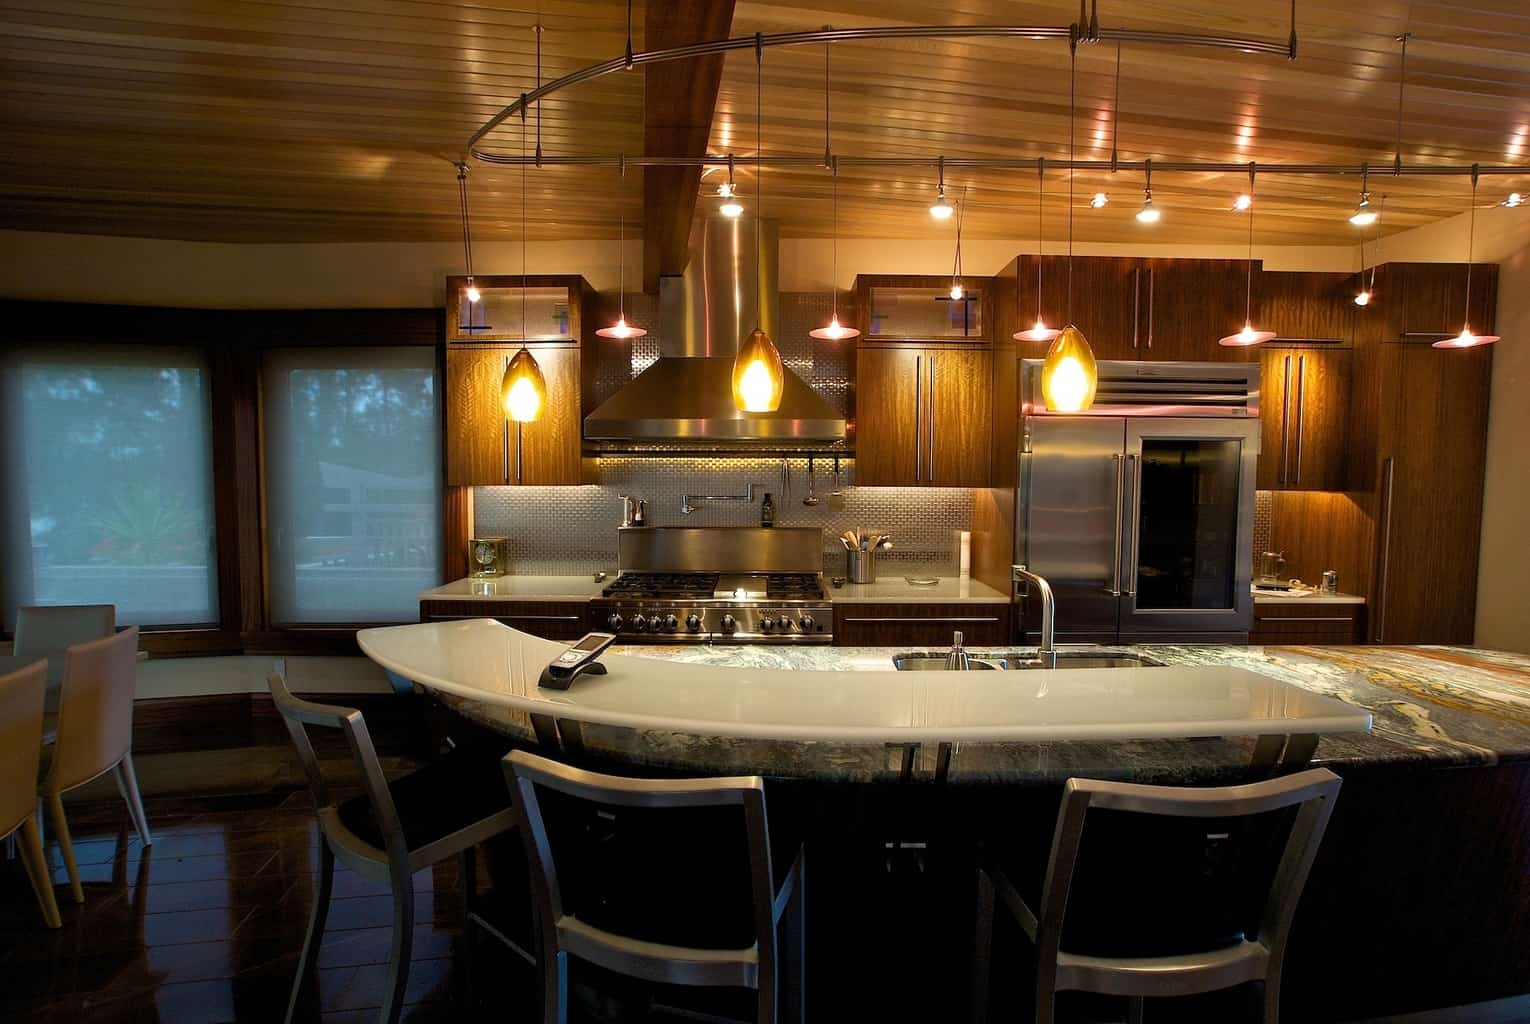 Kitchen remodeling contractors salem oregon - cypress homes